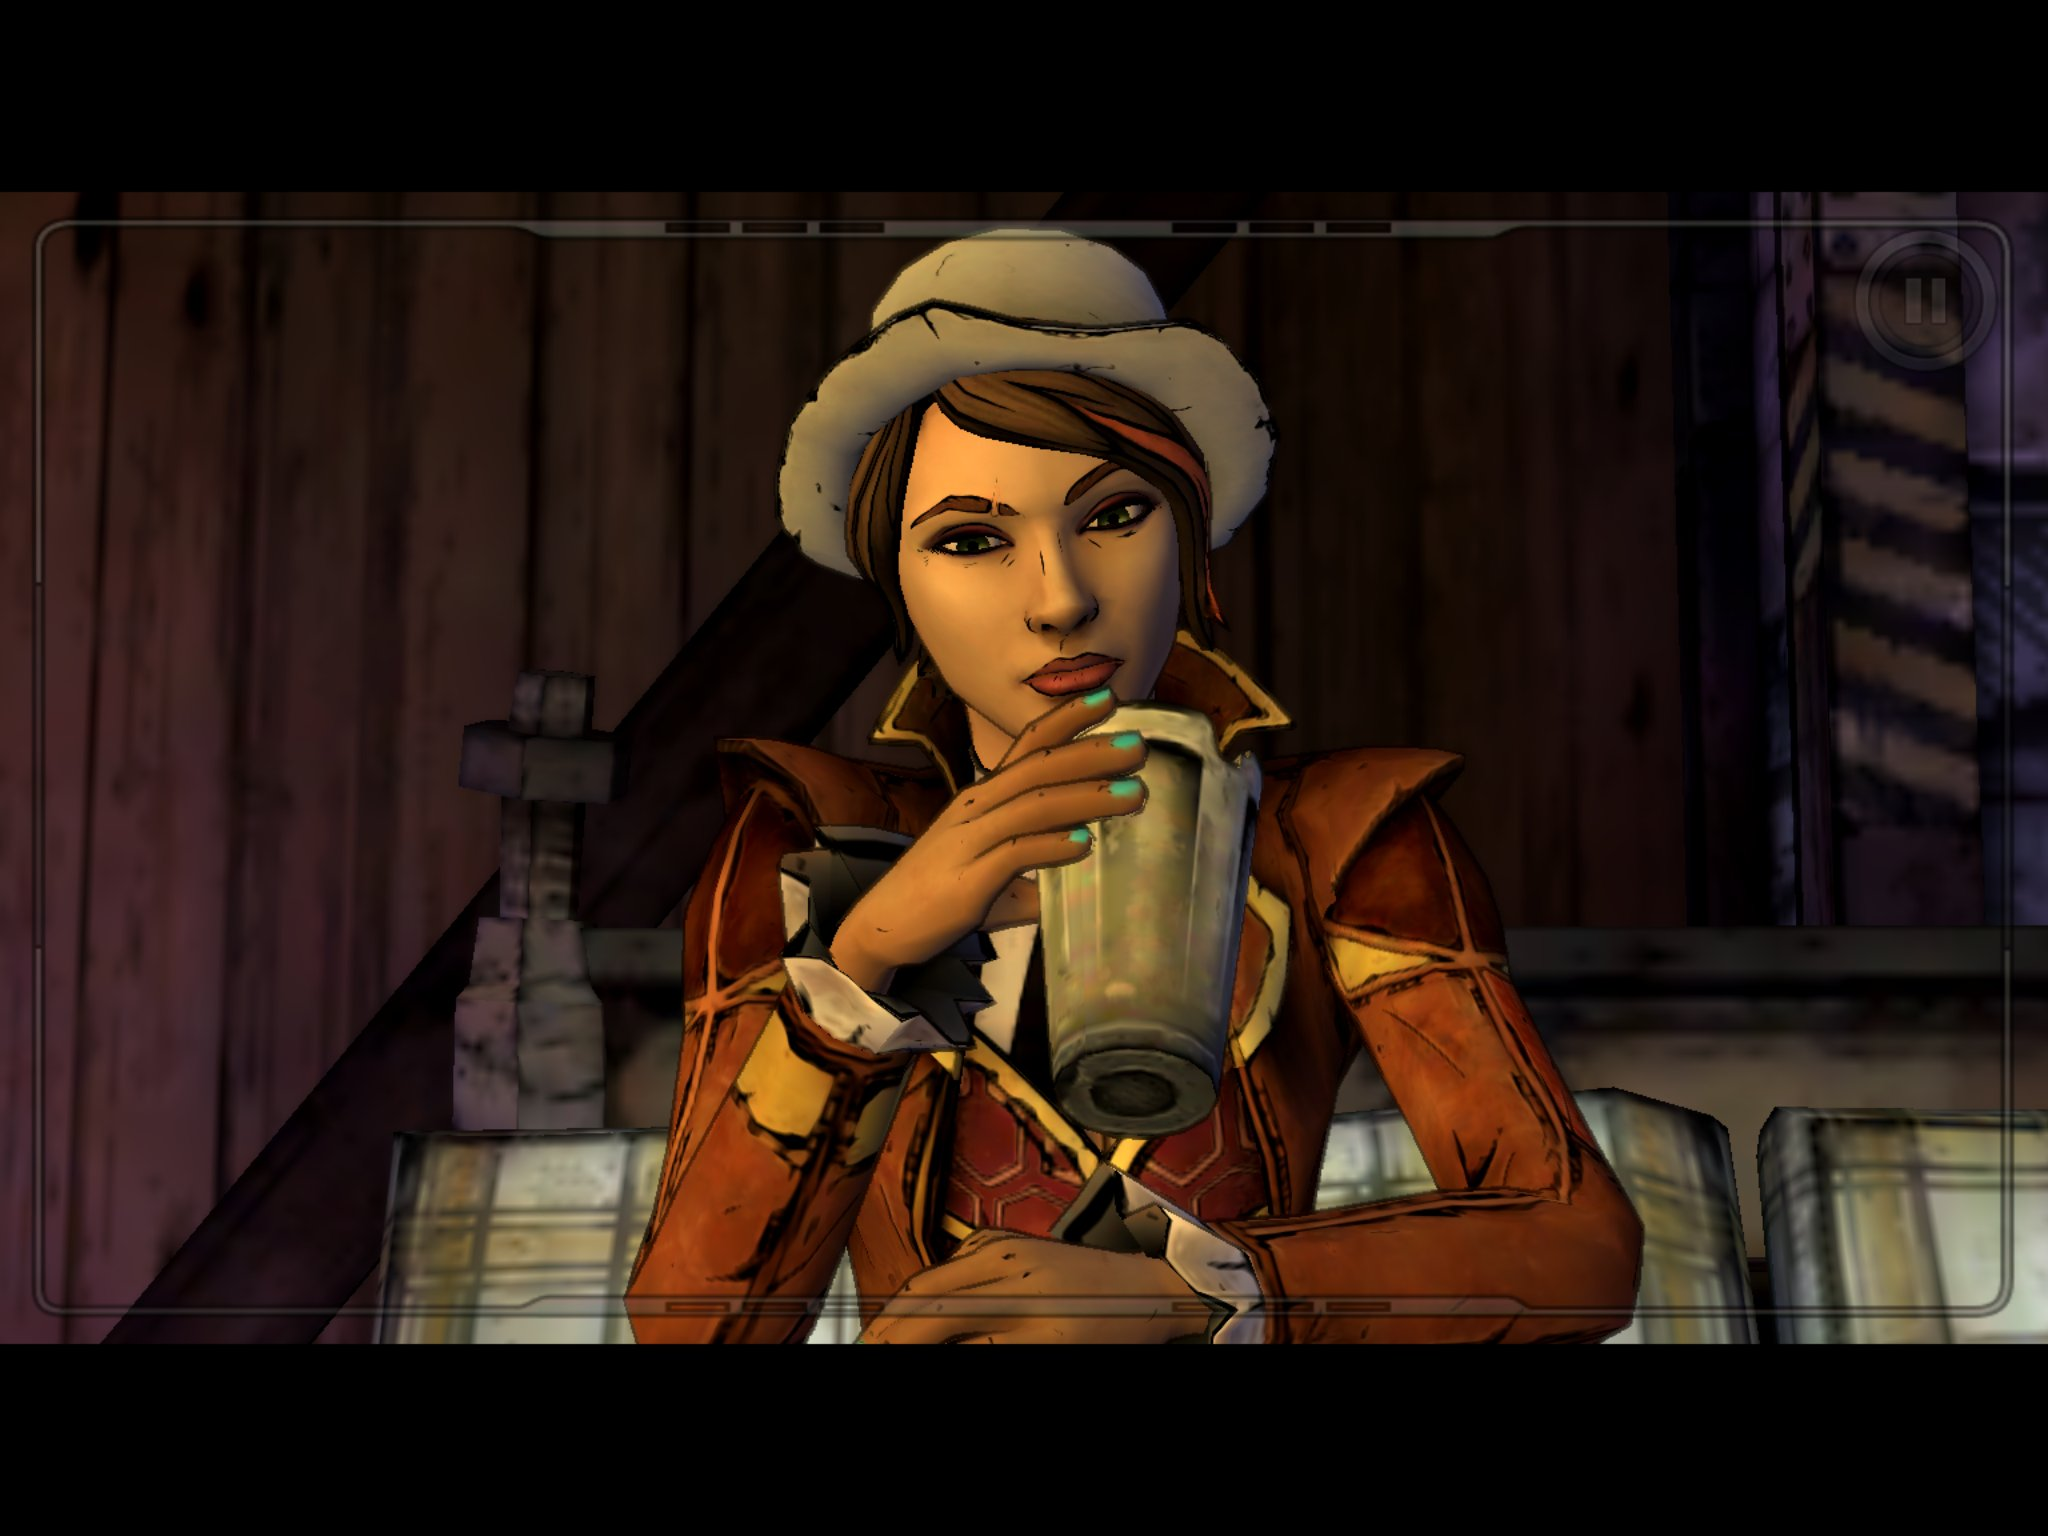 Tales from the Borderlands Episode 1 6